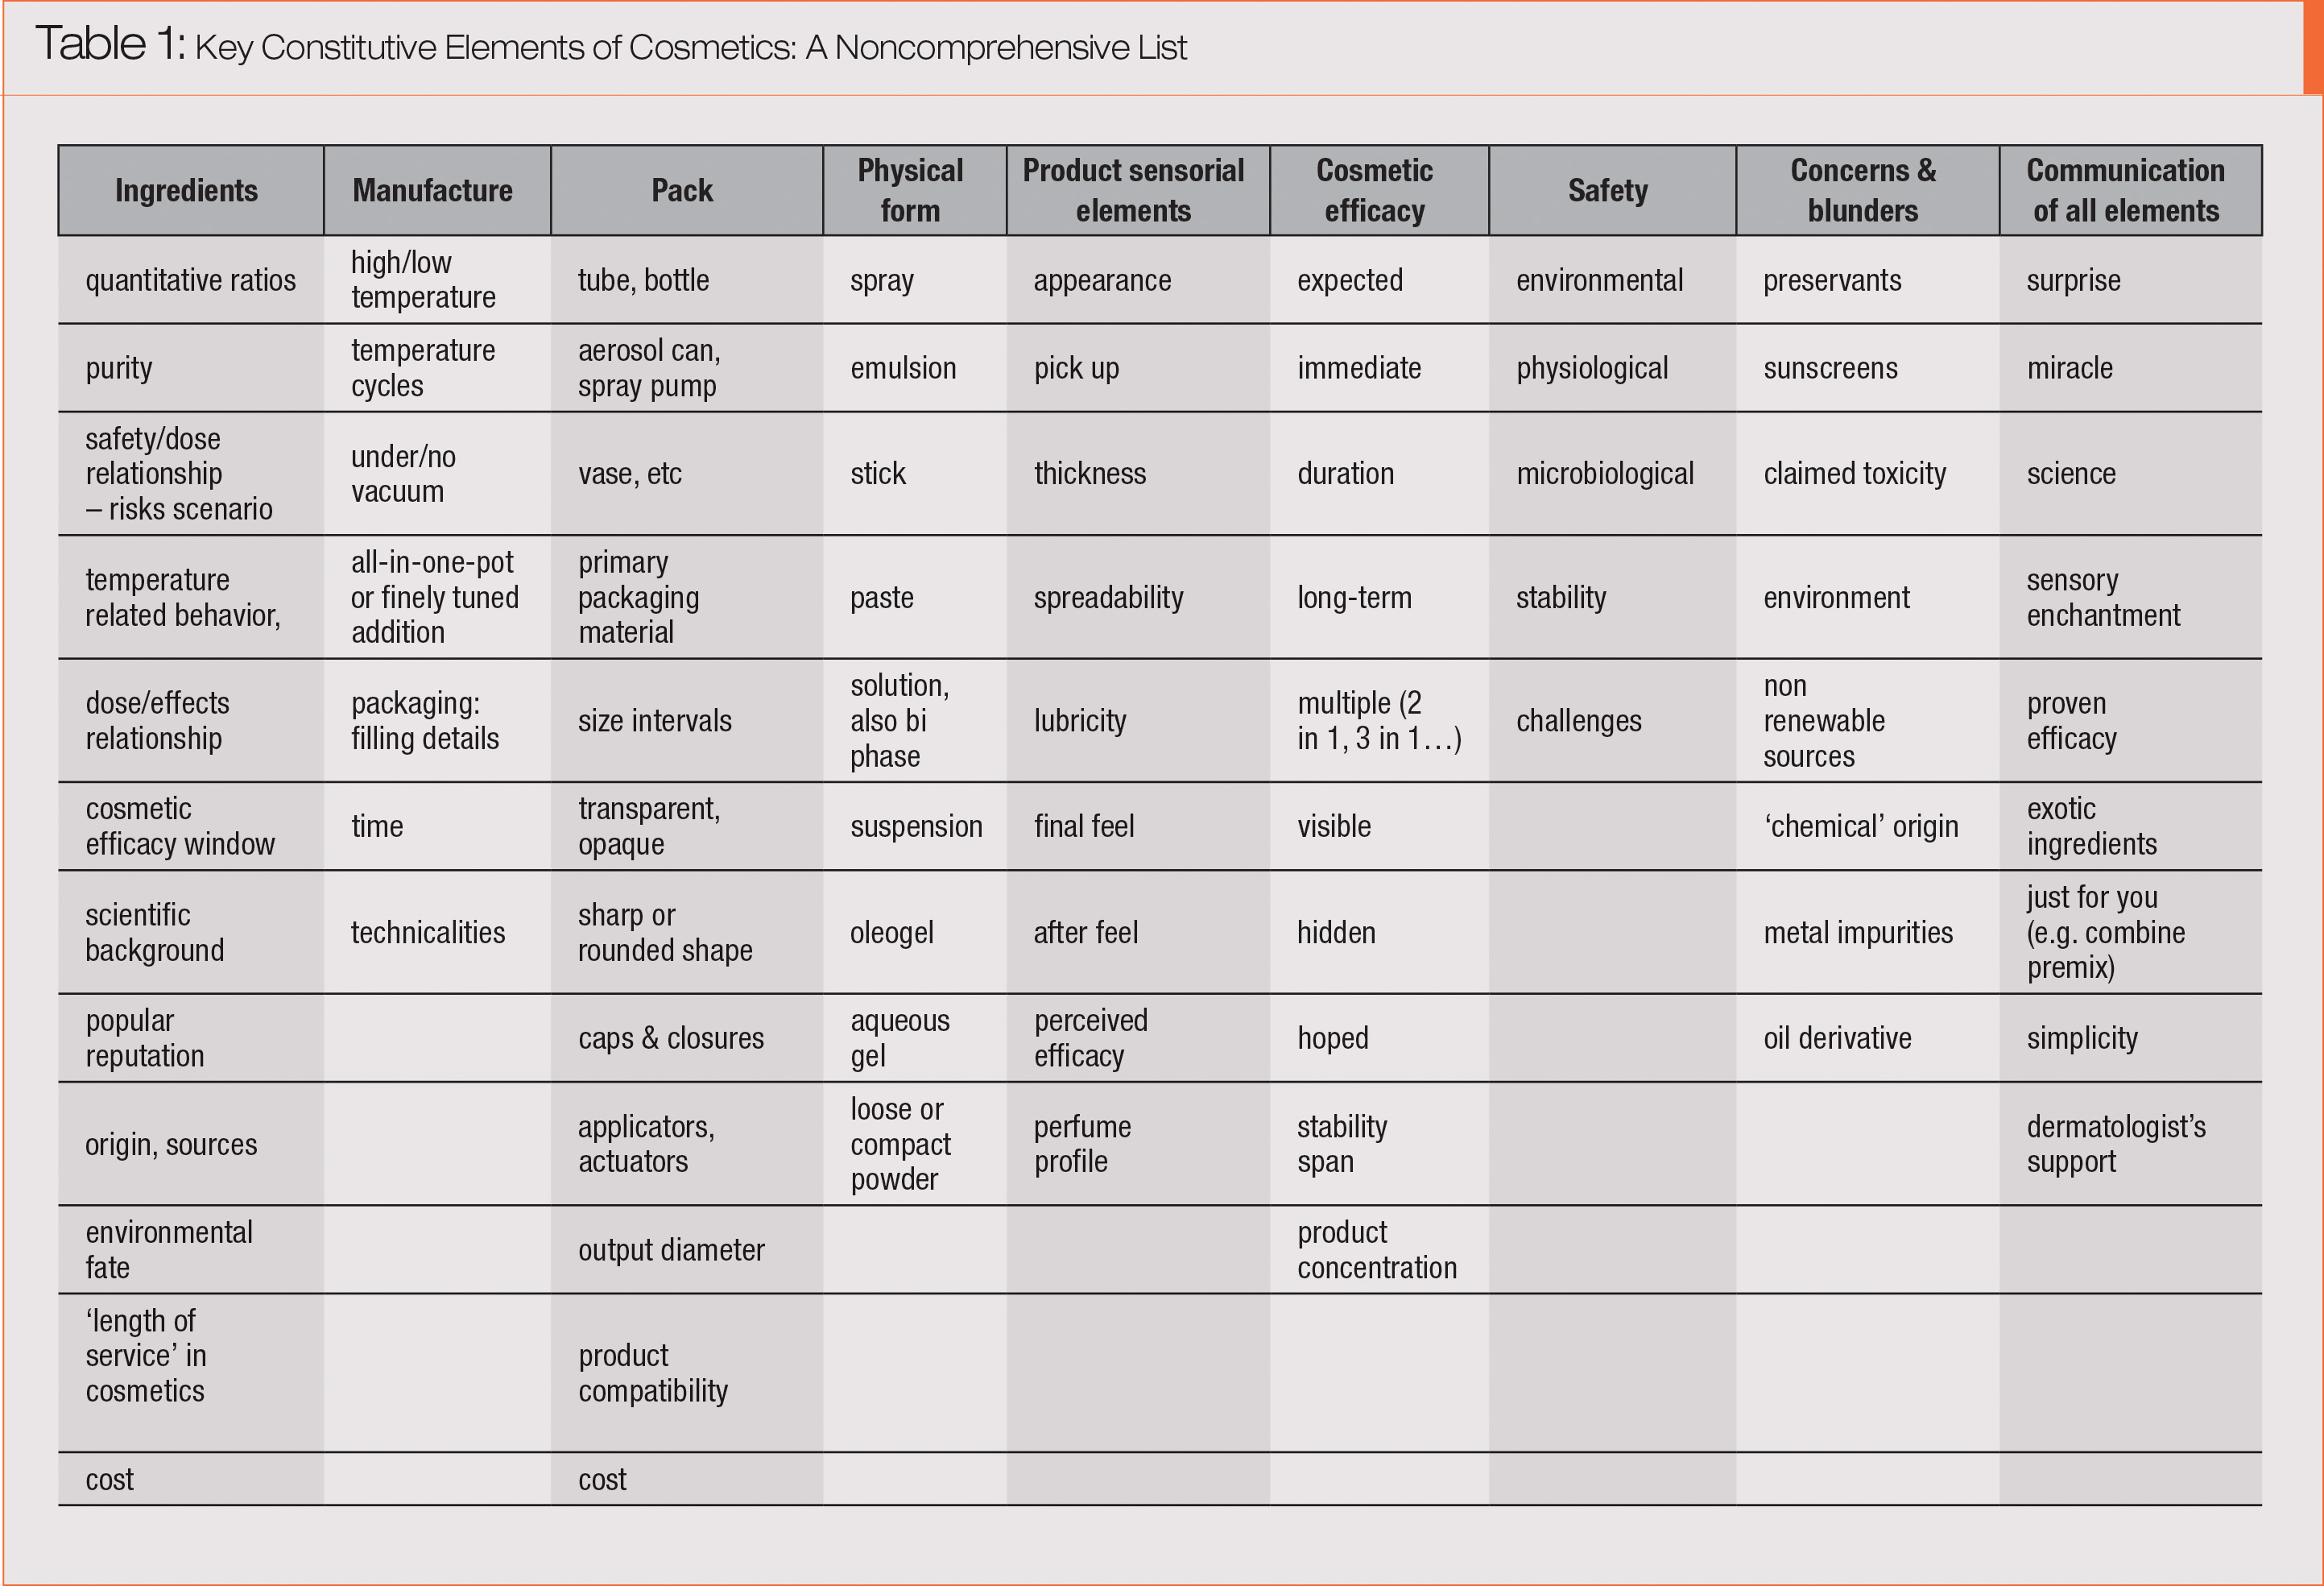 Key Constitutive Elements of Cosmetics: A Noncomprehensive List